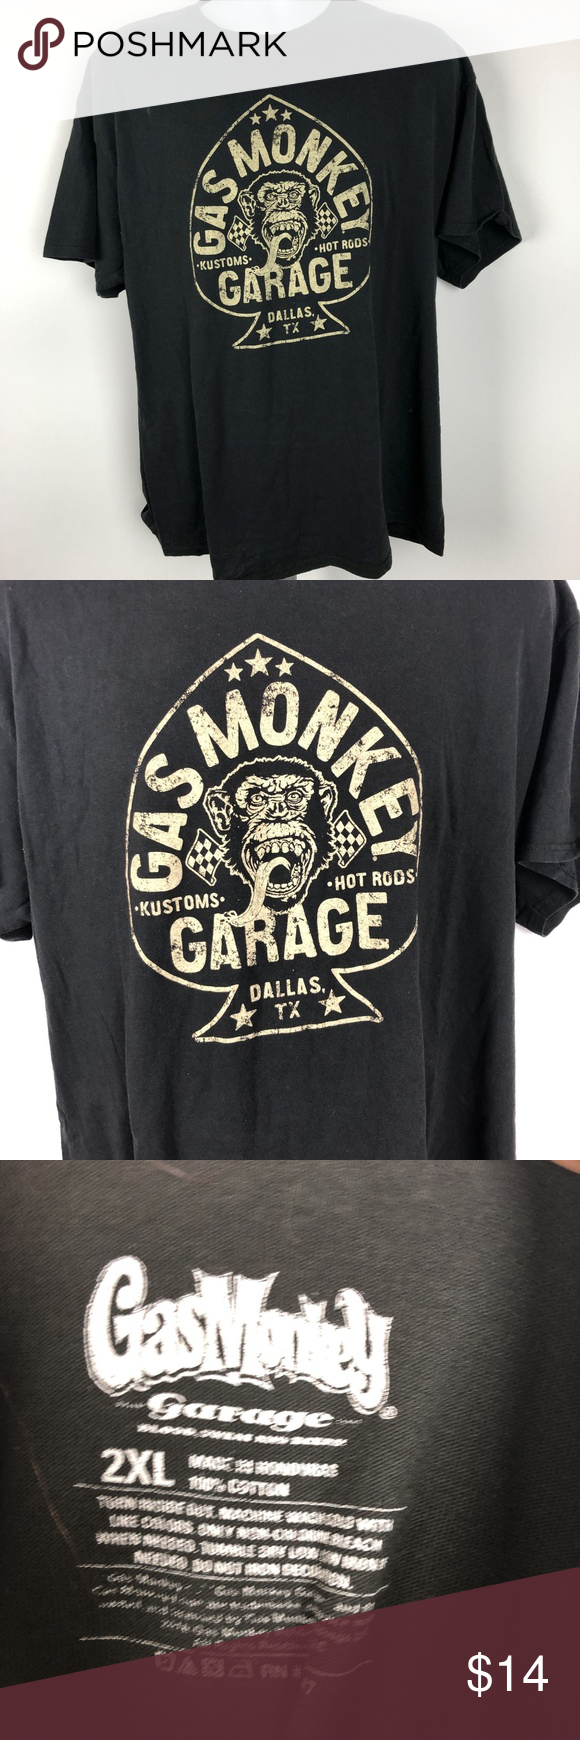 Gas Monkey Garage Men's T-shirt Size 2XL Black DD4 Gas Monkey Garage Men's T-shirt Size 2XL Black DD4   24 inches armpit to armpit 29 inches in length from seam to hem on back Gas Monkey Garage Shirts Tees - Short Sleeve #gasmonkeygarage Gas Monkey Garage Men's T-shirt Size 2XL Black DD4 Gas Monkey Garage Men's T-shirt Size 2XL Black DD4   24 inches armpit to armpit 29 inches in length from seam to hem on back Gas Monkey Garage Shirts Tees - Short Sleeve #gasmonkeygarage